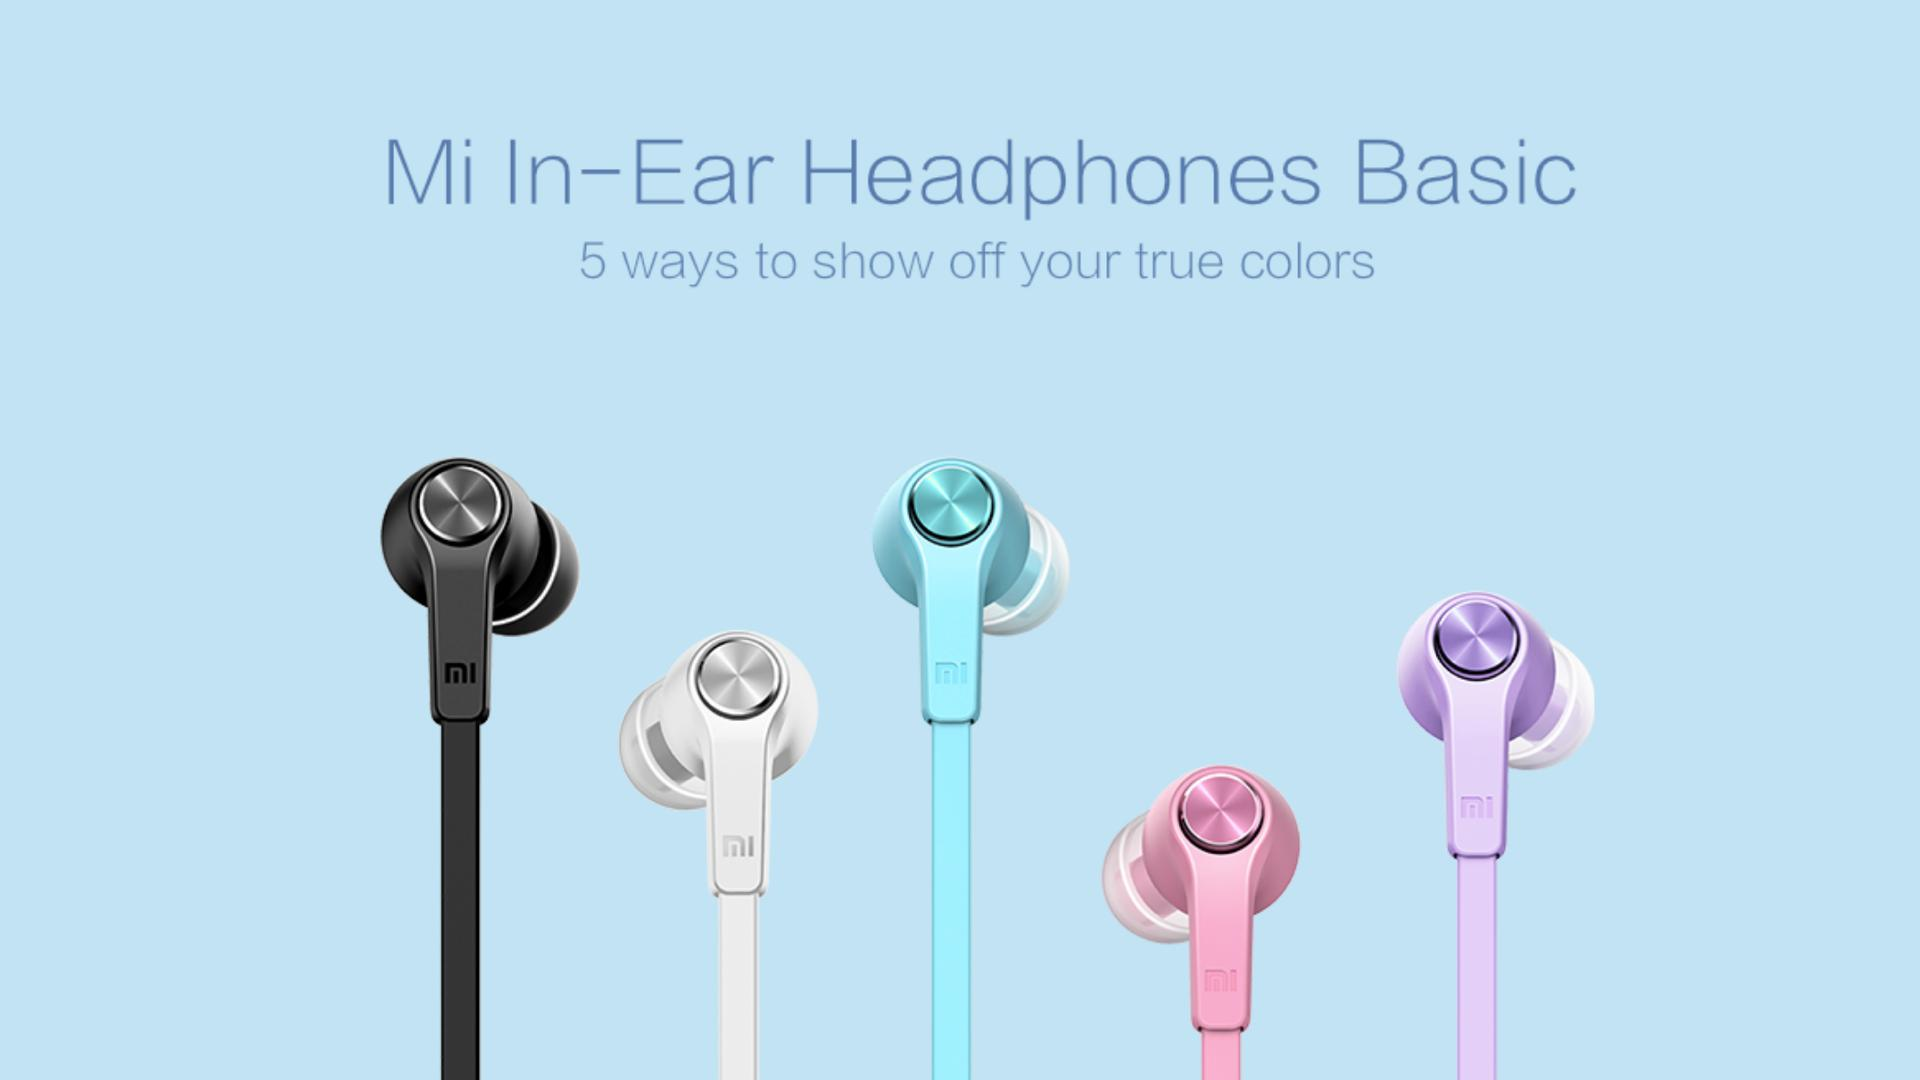 Xiaomi Mi In-Ear Headphones Basic sluchátka 3,5 mm jack piston - barevne